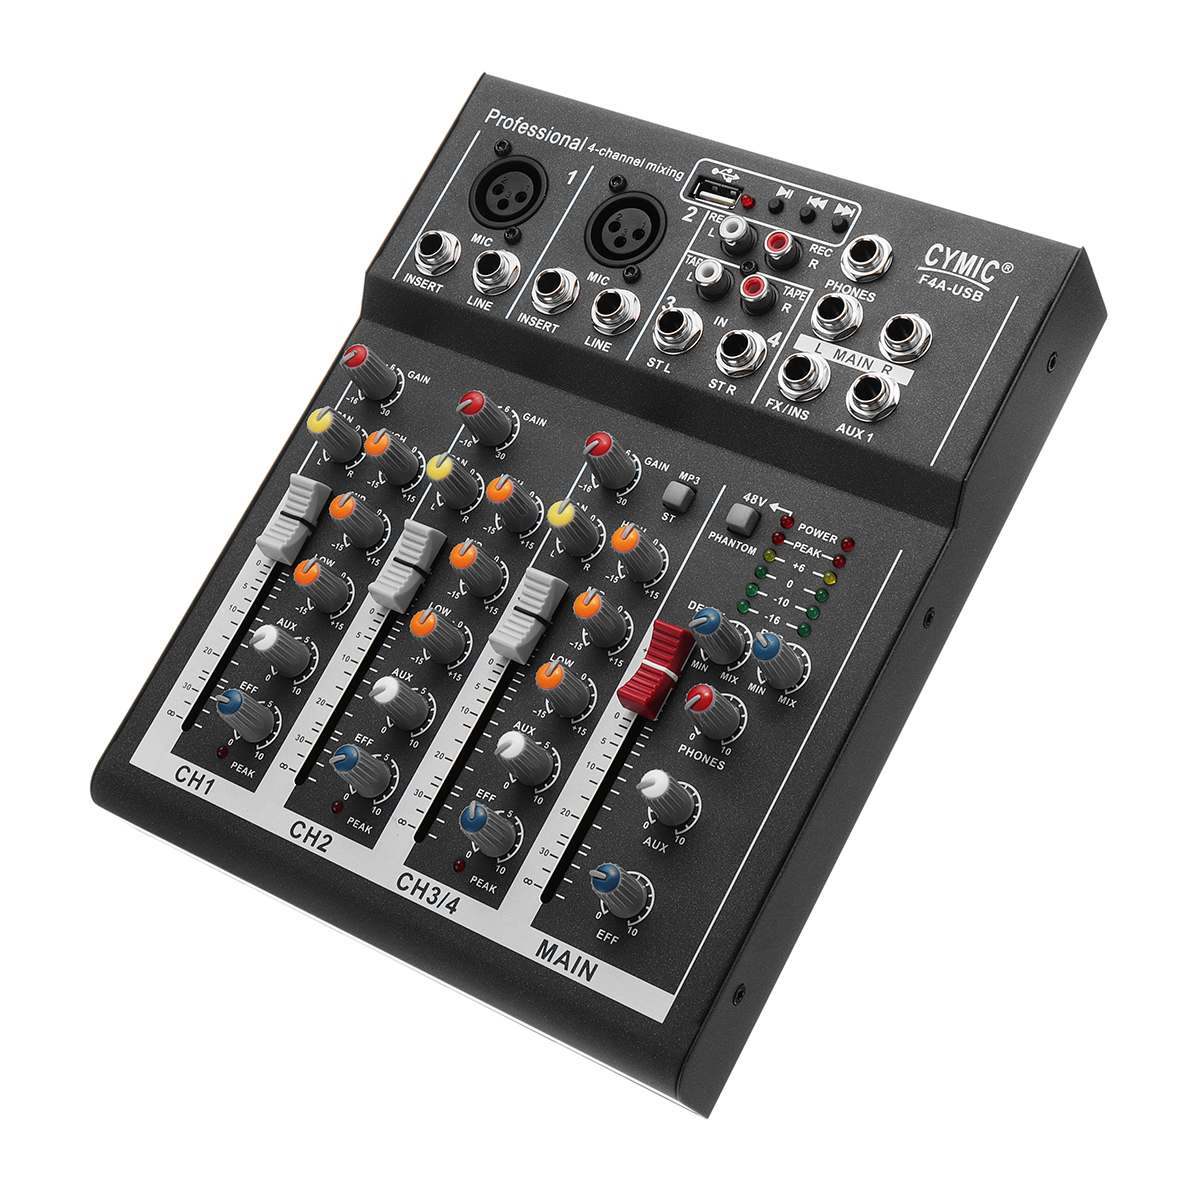 LEORY Black 4 Channels Audio Sound Mixing DJ Equipment DJ Audio Mixer Console With USB MP3 Jack Live For Karaoke KTV SpeechLEORY Black 4 Channels Audio Sound Mixing DJ Equipment DJ Audio Mixer Console With USB MP3 Jack Live For Karaoke KTV Speech